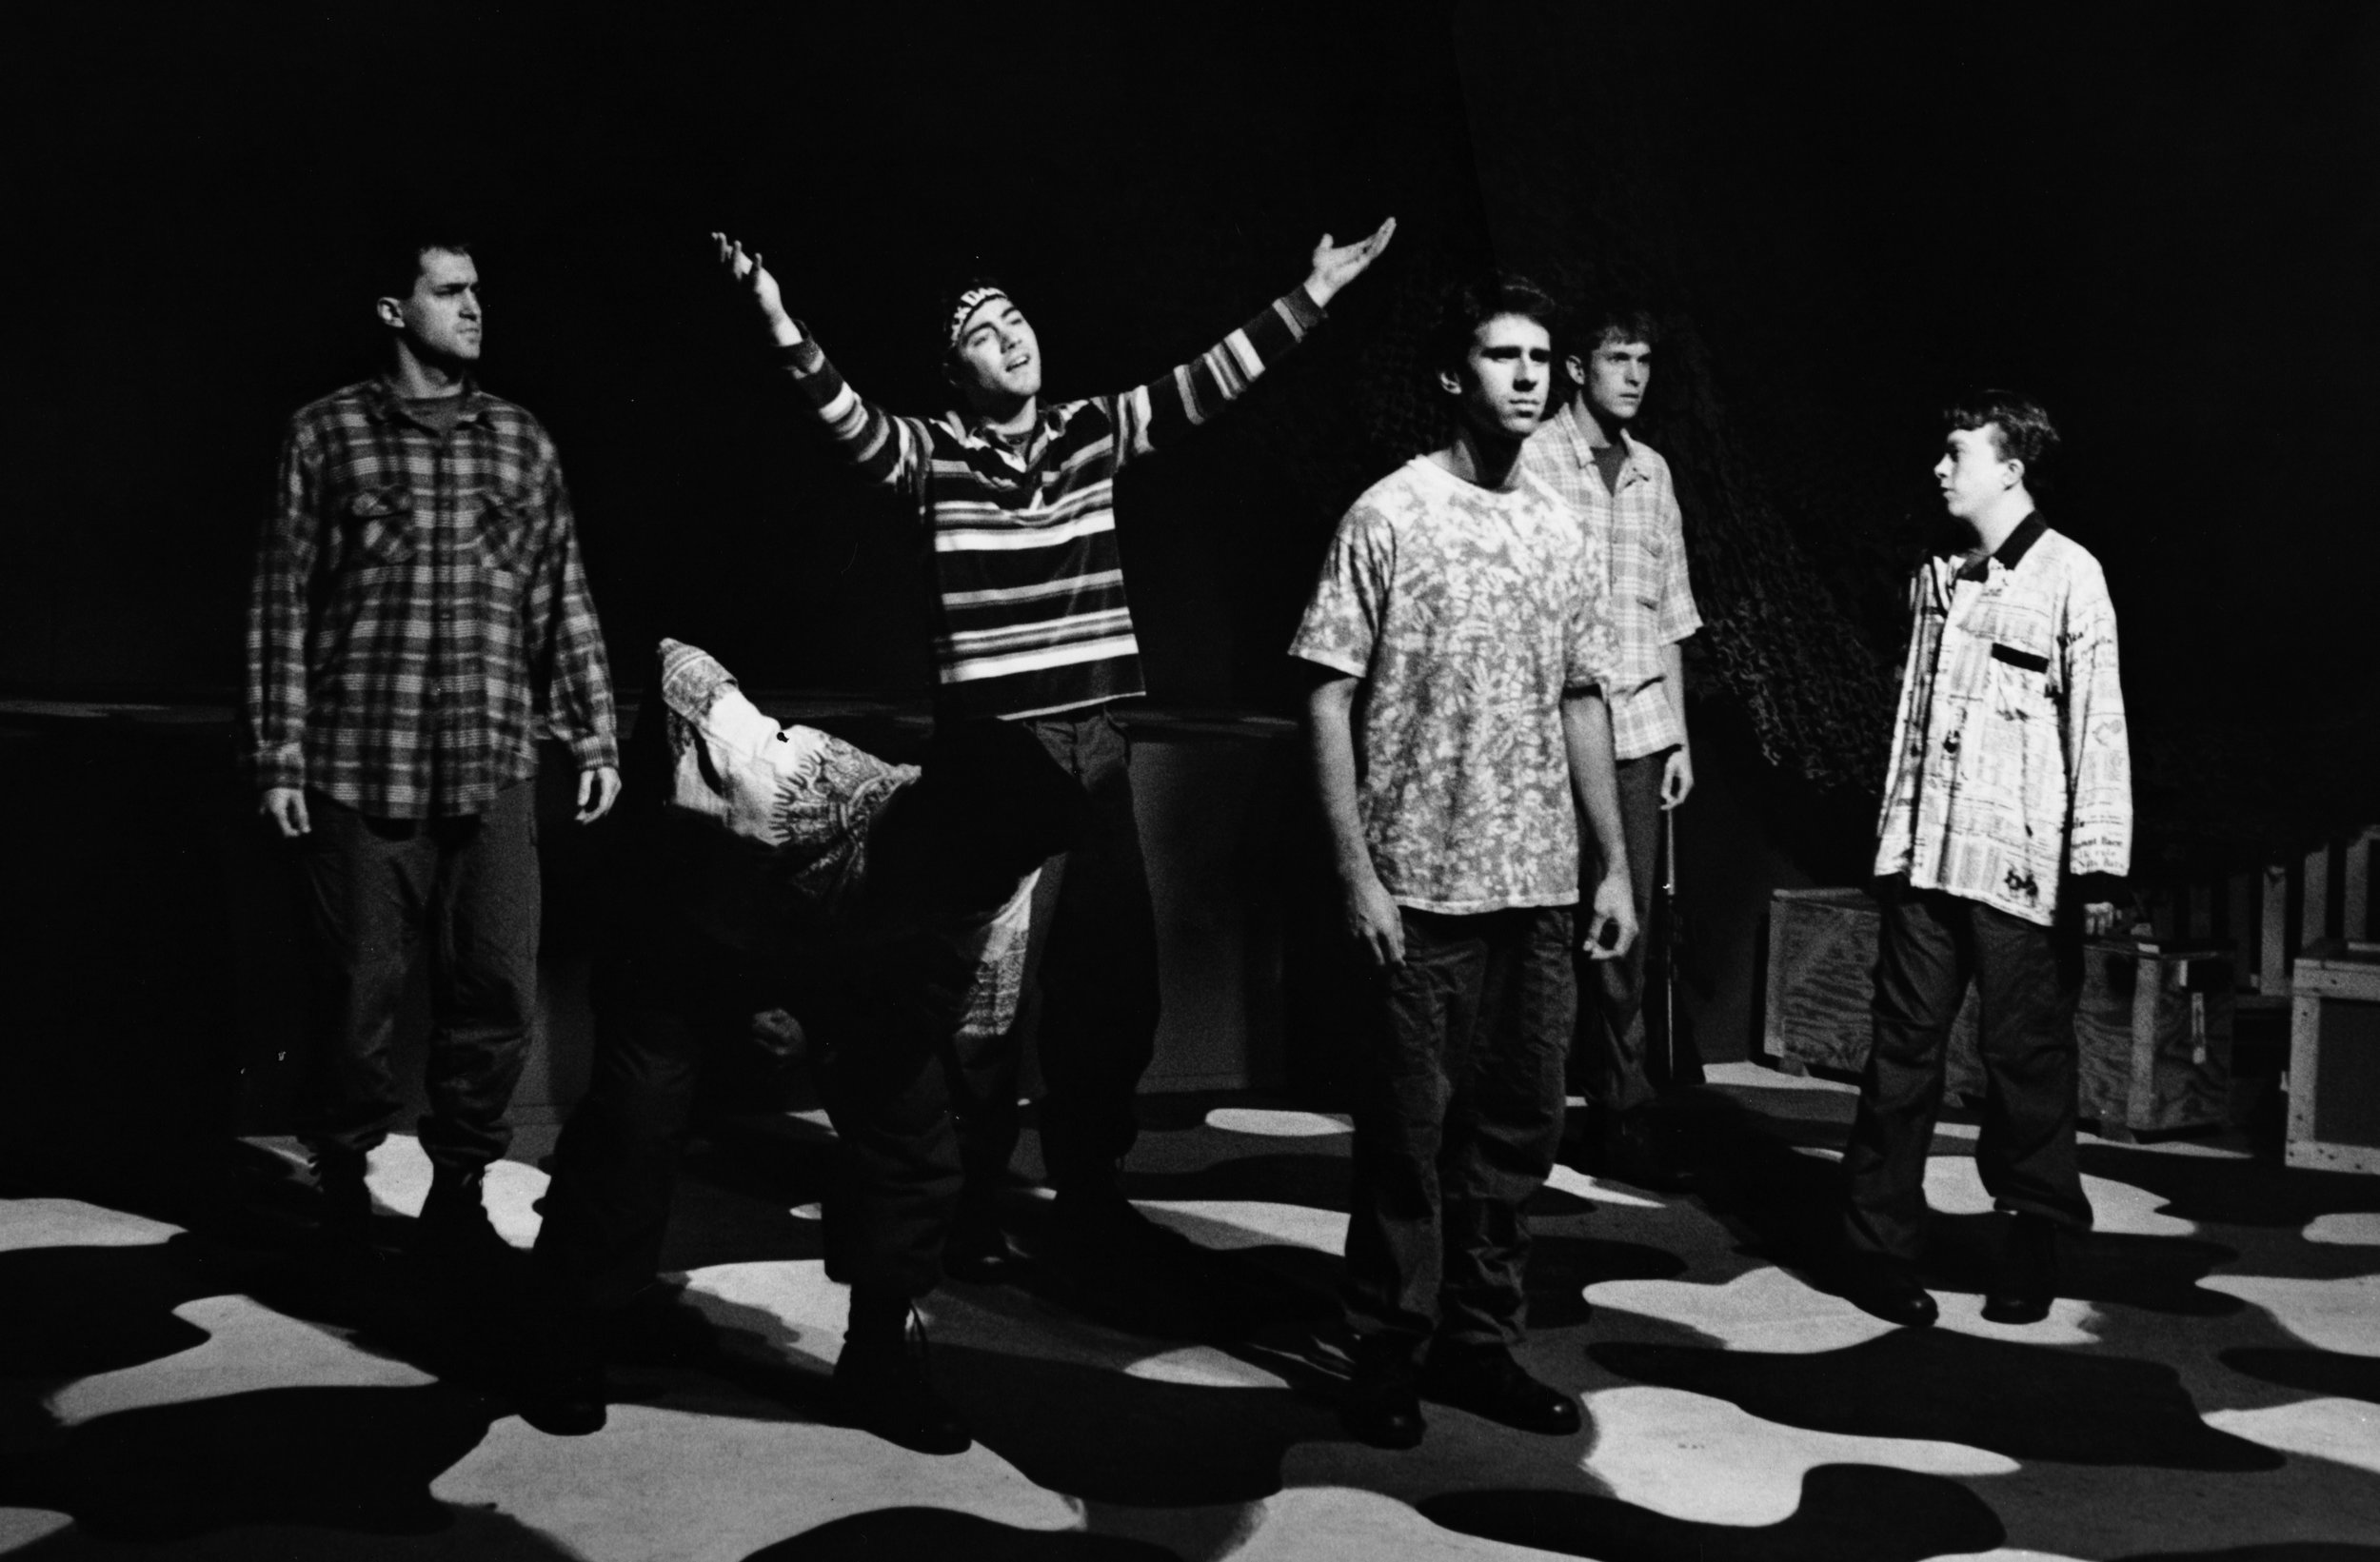 Scott Donnelly (Little John), Gene Fereaud (Habu), Chris Solari (Scooter), Craig Bilsky (Professor), William Vogt (Dinky Dau), and Scott Freeburg (Baby San) in Draw the Sneck Productions'1996 | 1997 productions of  Tracers , directed by John Drouillard.  Photo by Christine Krench.